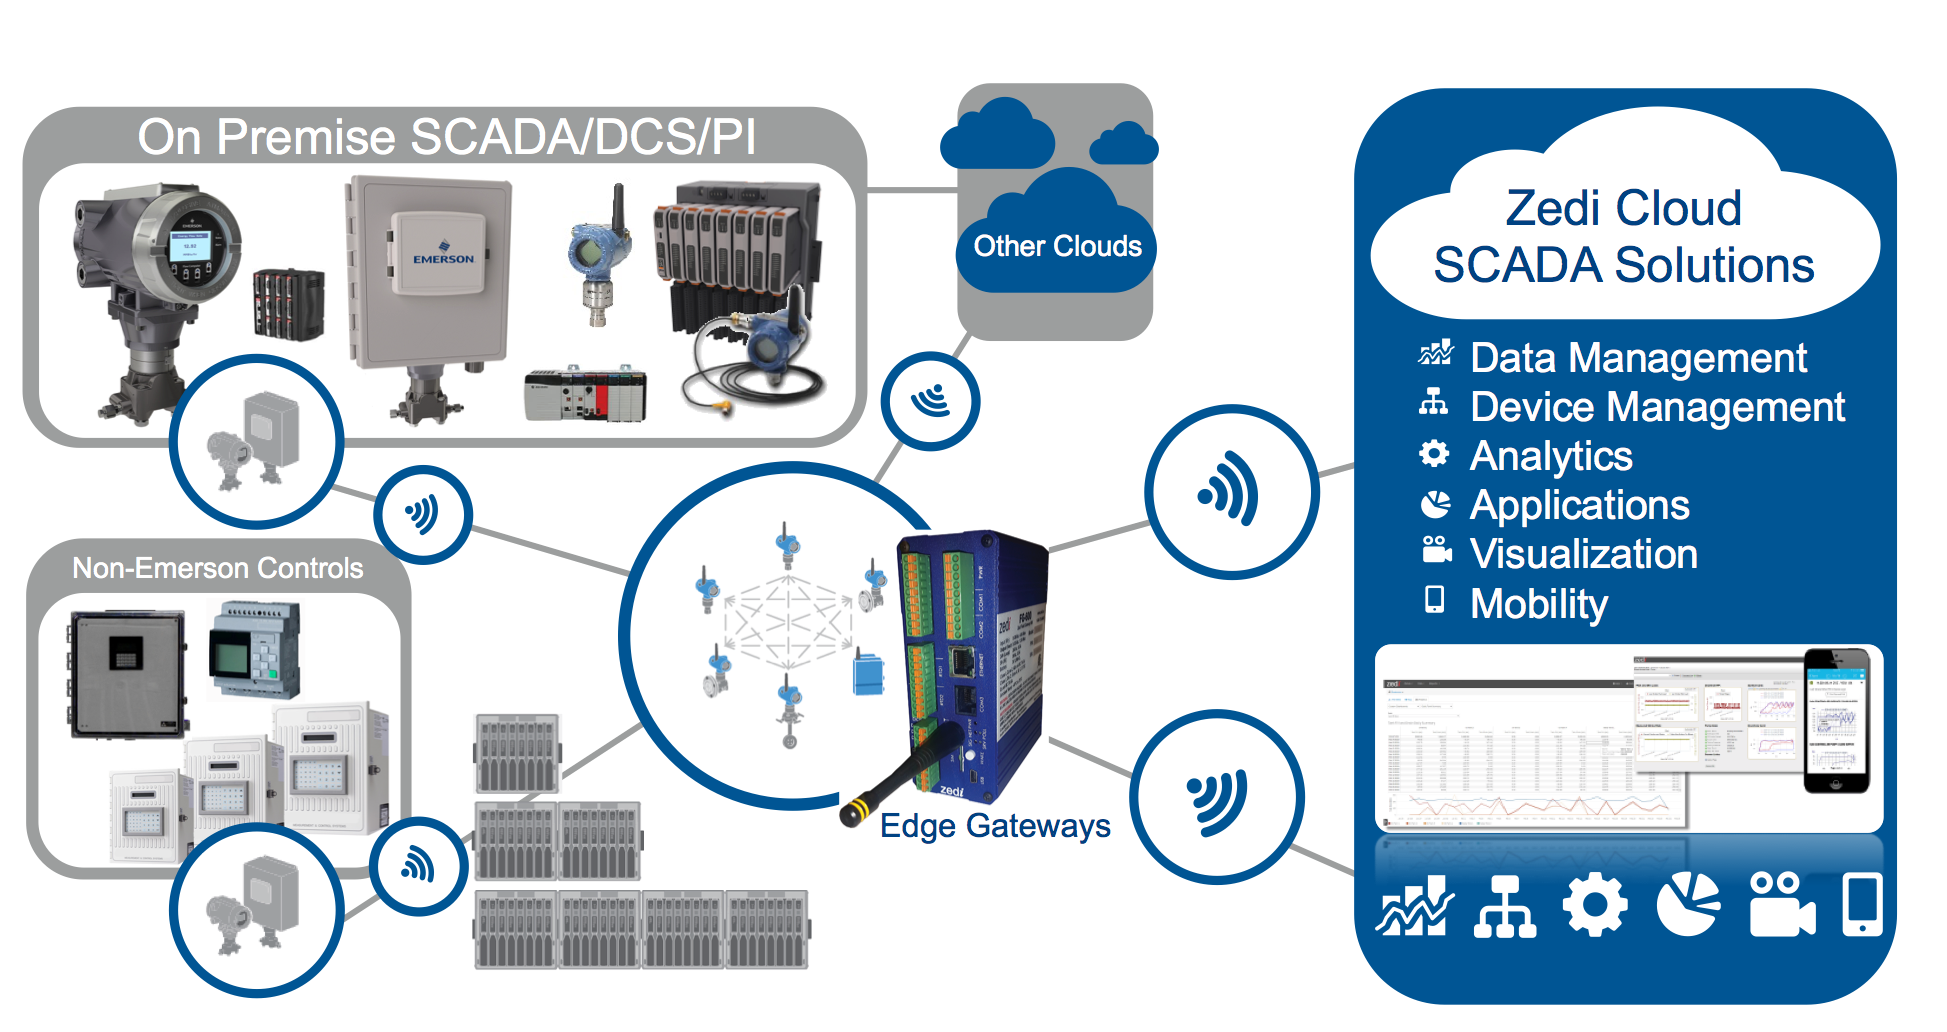 Cloud SCADA network visual